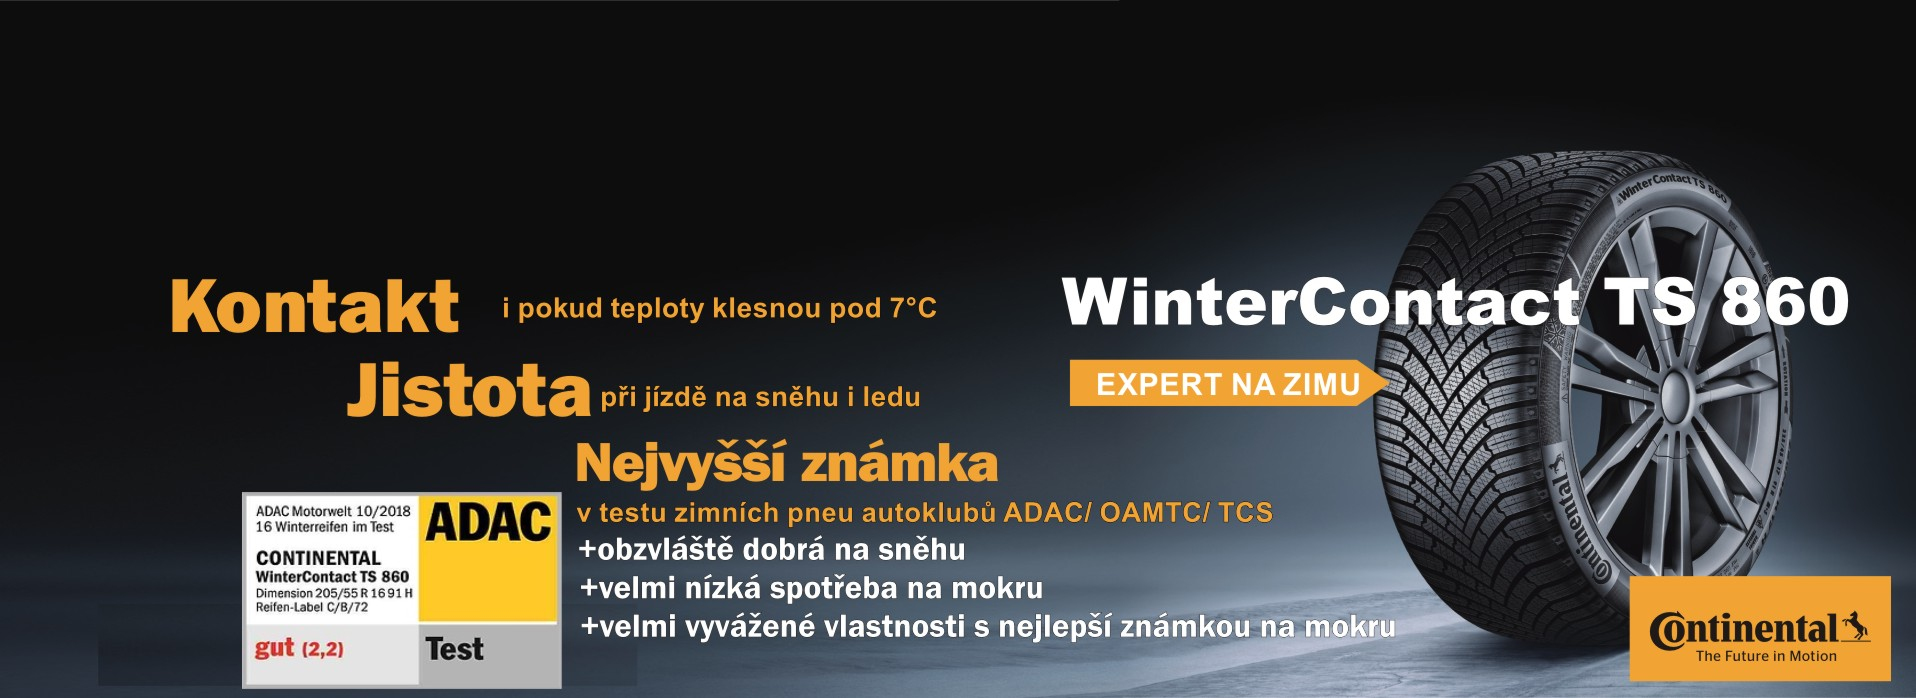 winter-contact-ts-860